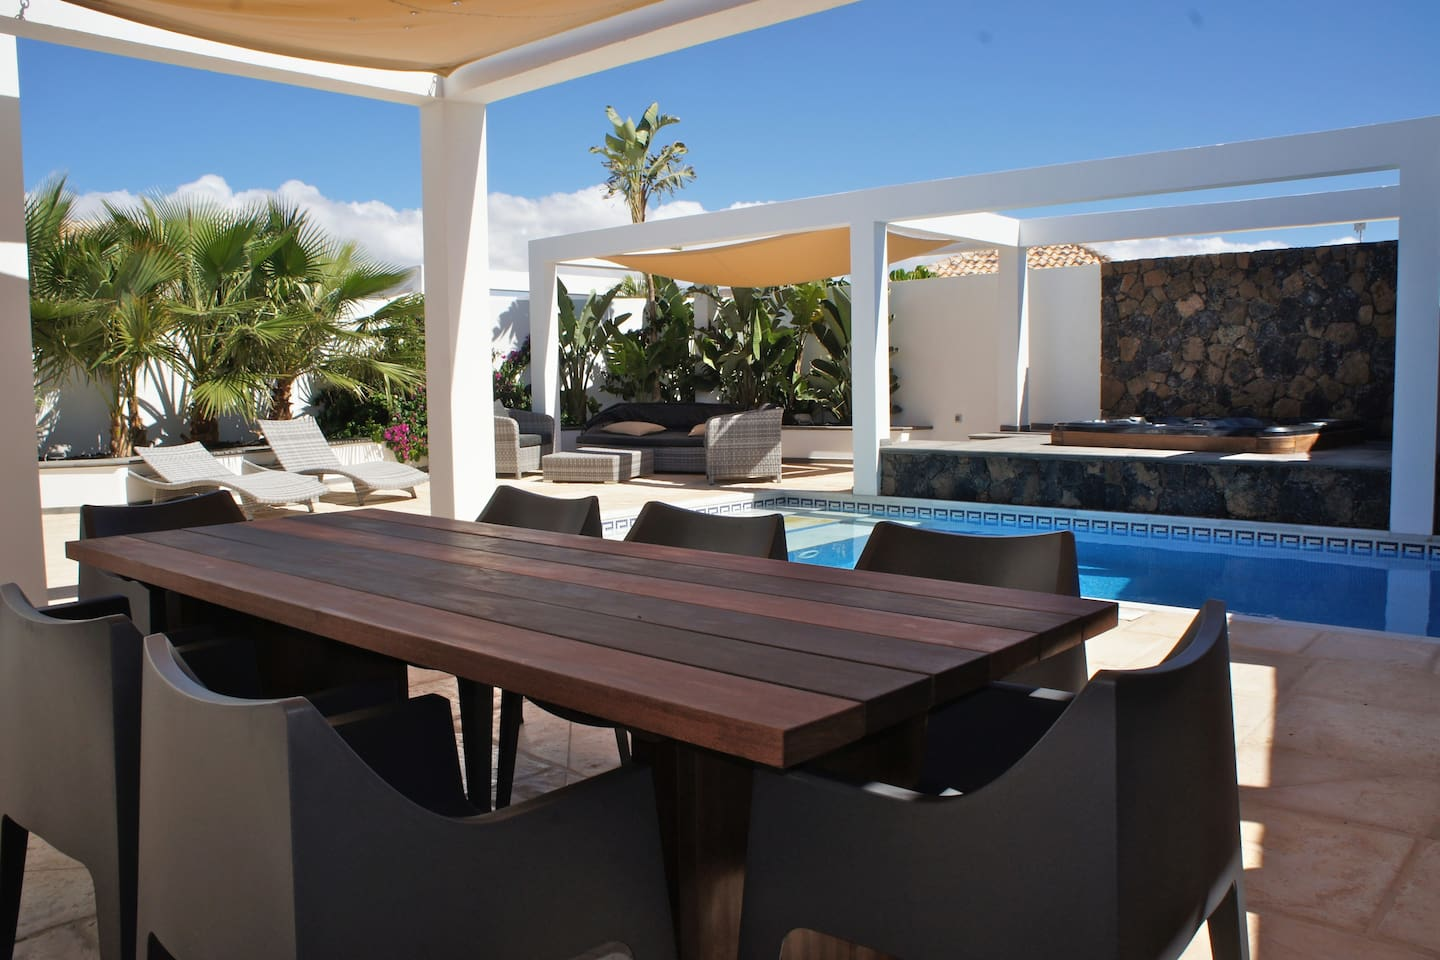 CASA PALOMA - Houses for Rent in El Cotillo, Canarias, Spain